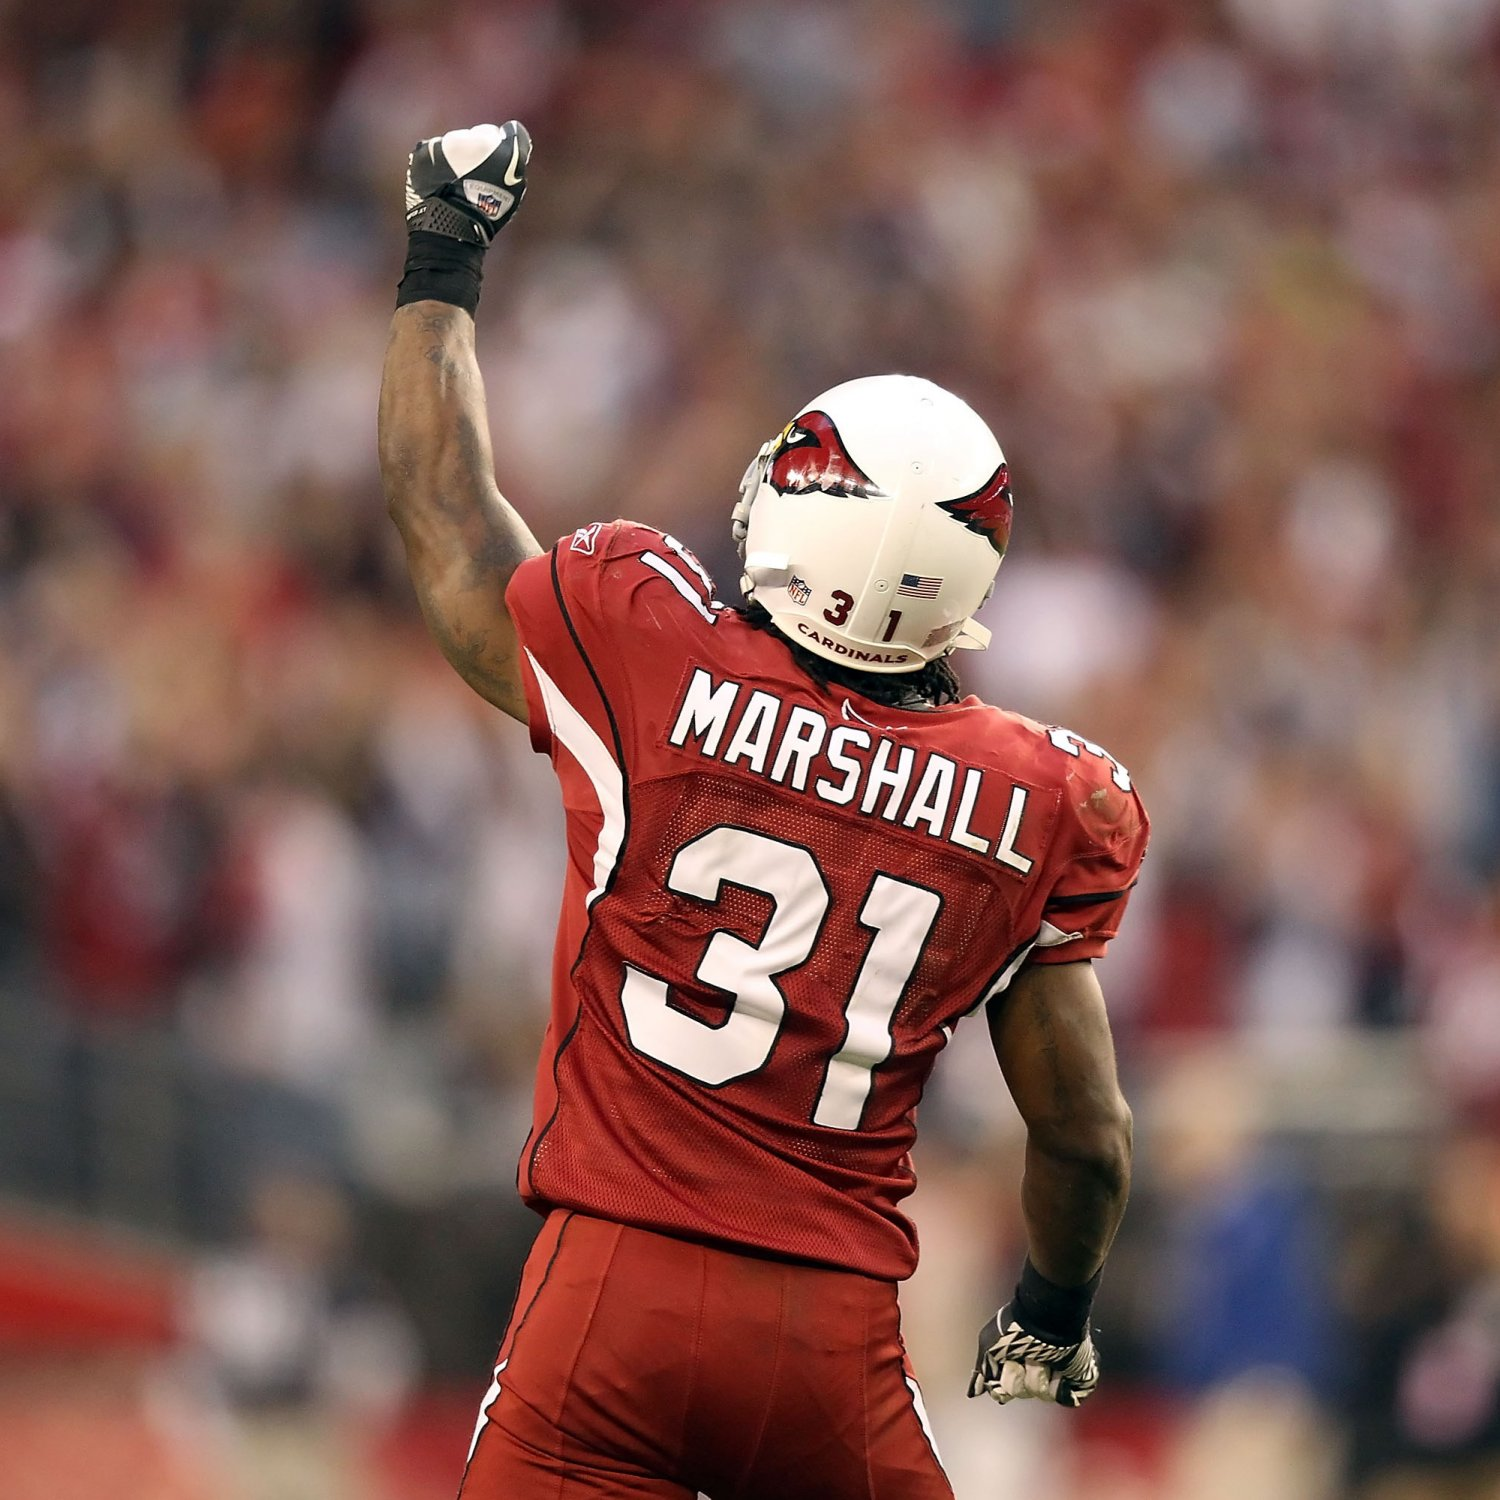 San Diego Chargers Depth Chart 2013: Richard Marshall Adds Much-Needed Depth To San Diego